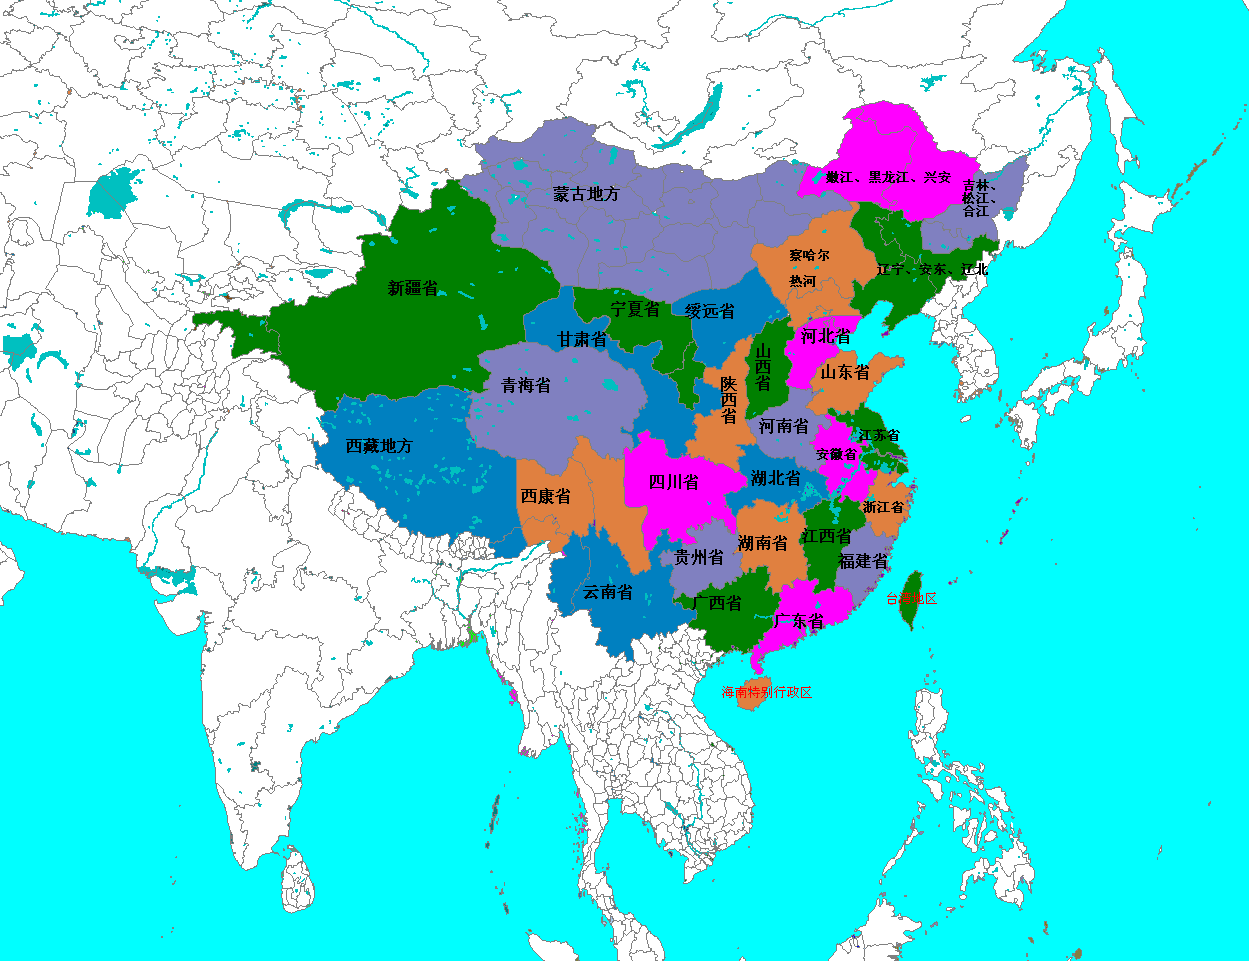 Carte Chine Provinces Chinoises.Chinoiseries Provinces Chinoises Monosyllabiques Sinoiseries